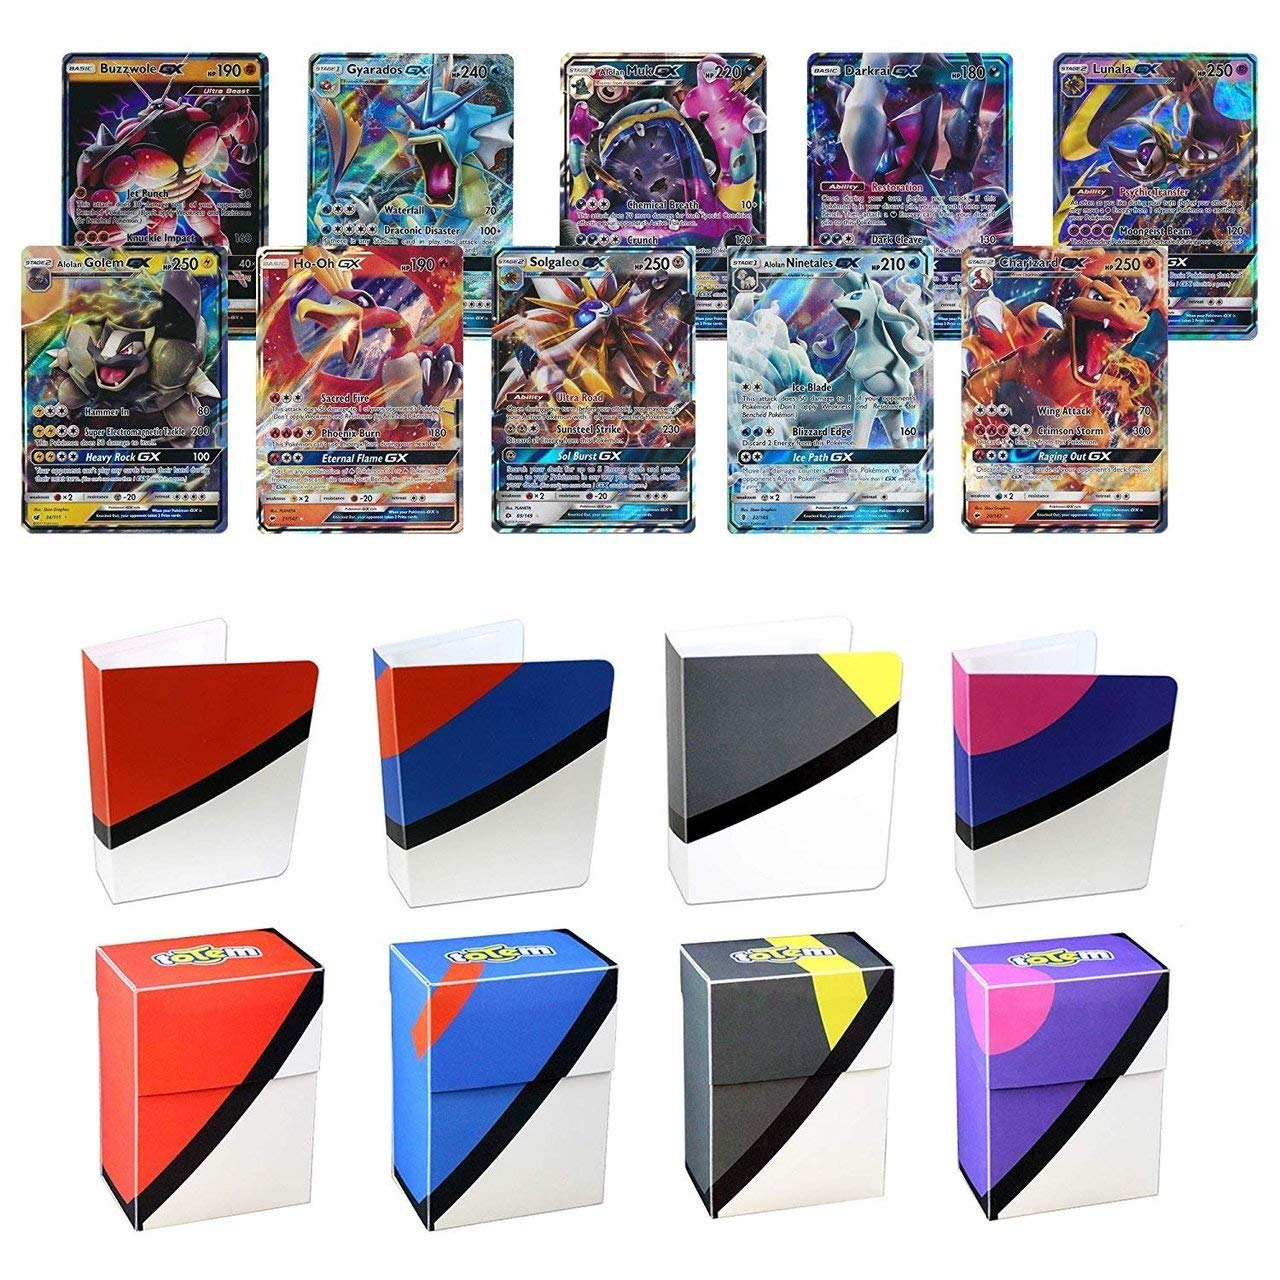 Totem World 10 Pokemon Card Lot of All GX Ultra Rares - No Duplicates - Includes Totem Mini Binder and Deck Box